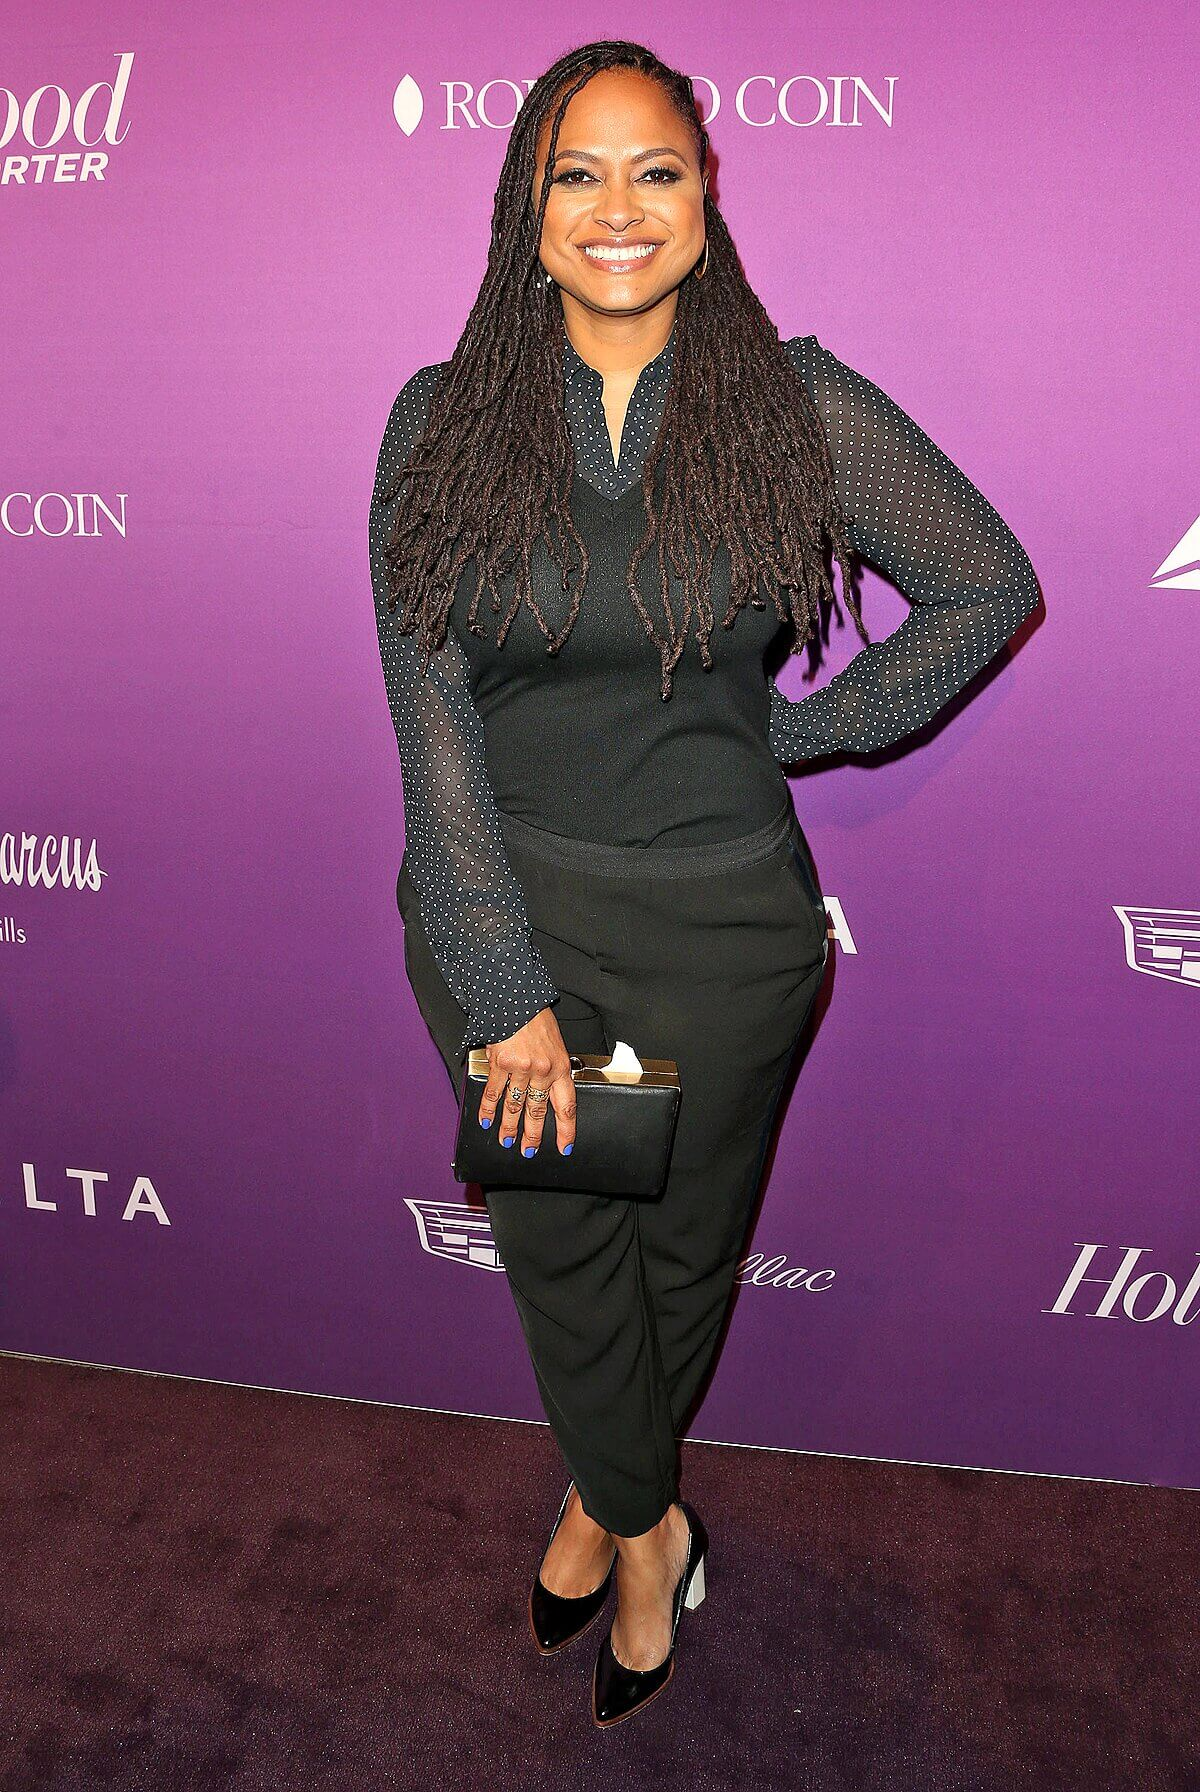 Ava DuVernay is the first black woman to earn a Golden Globe nomination for Best Director